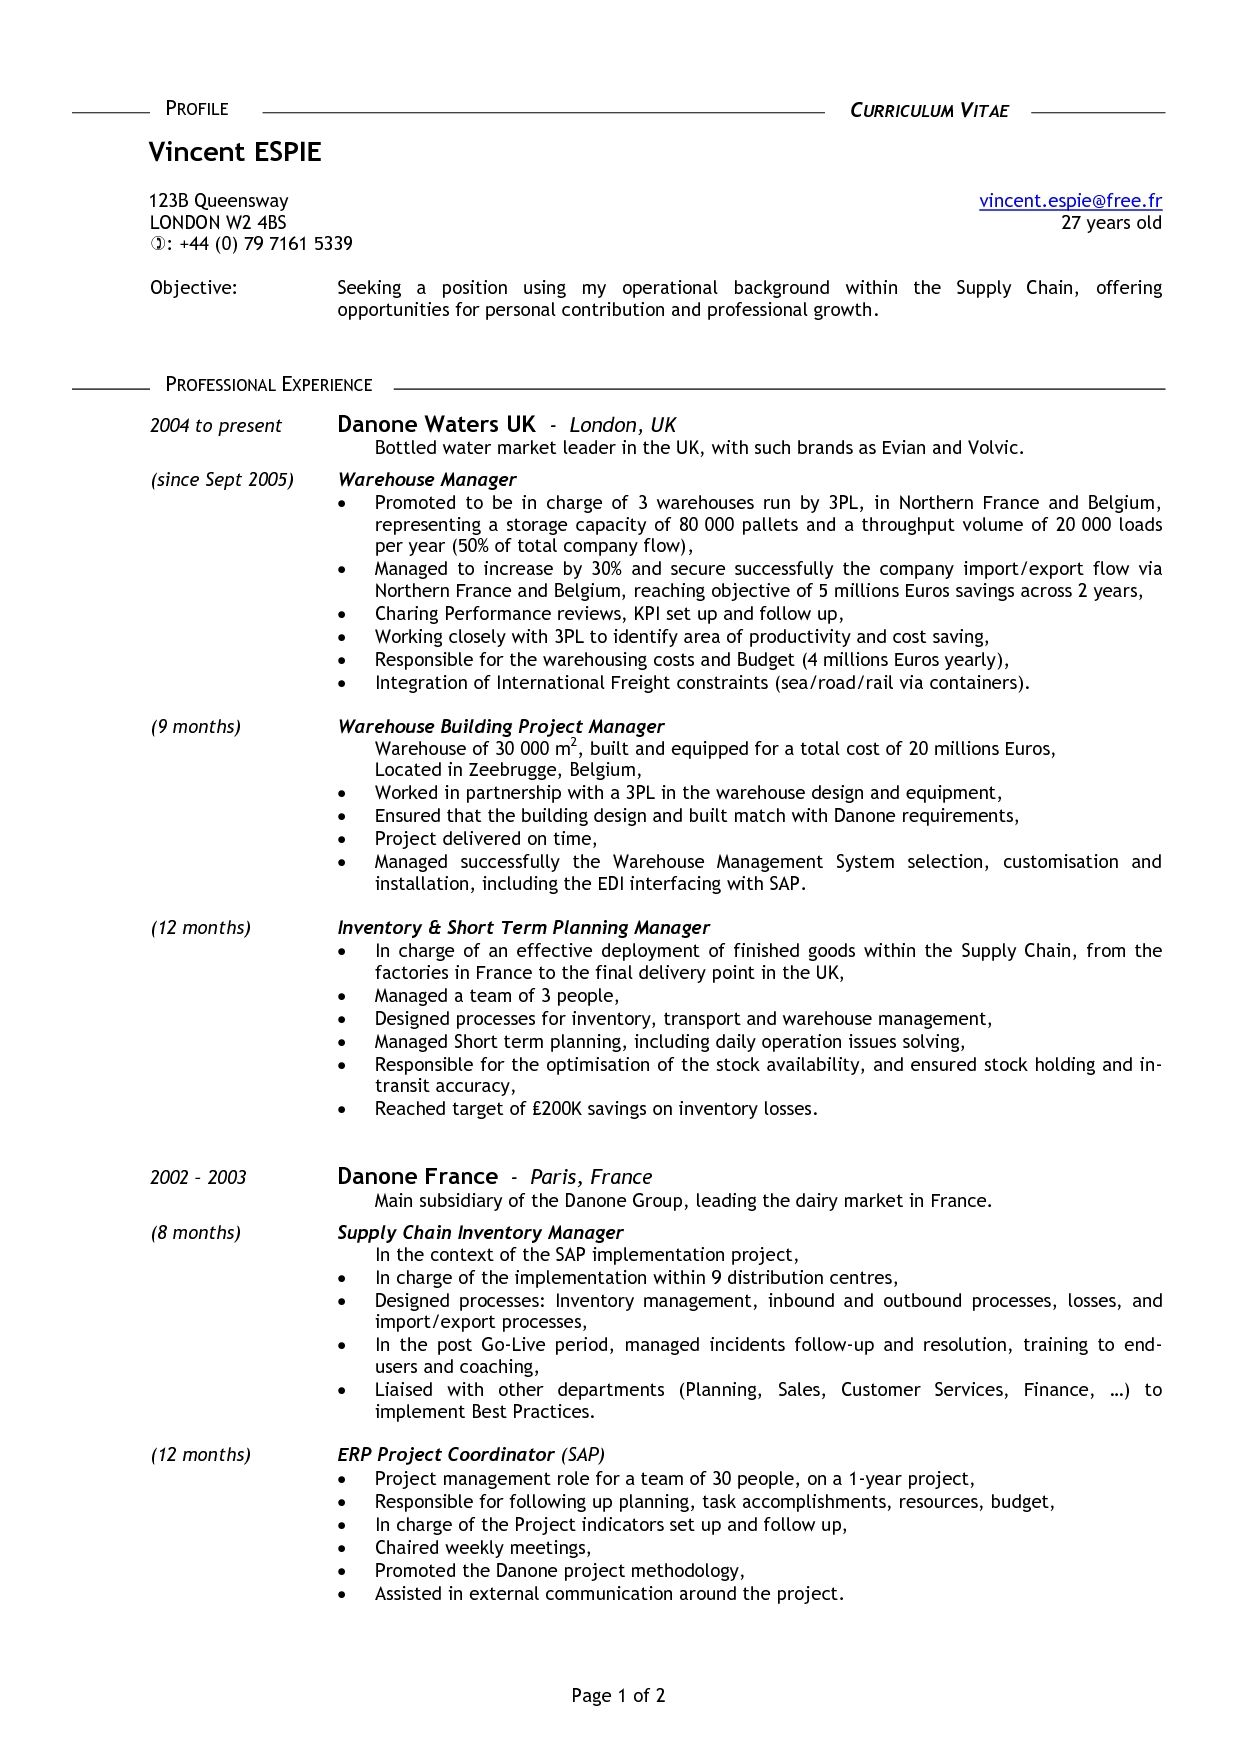 Resume Examples Me Nbspthis Website Is For Sale Nbspresume Examples Resources And Information Good Resume Examples Resume Examples Basic Resume